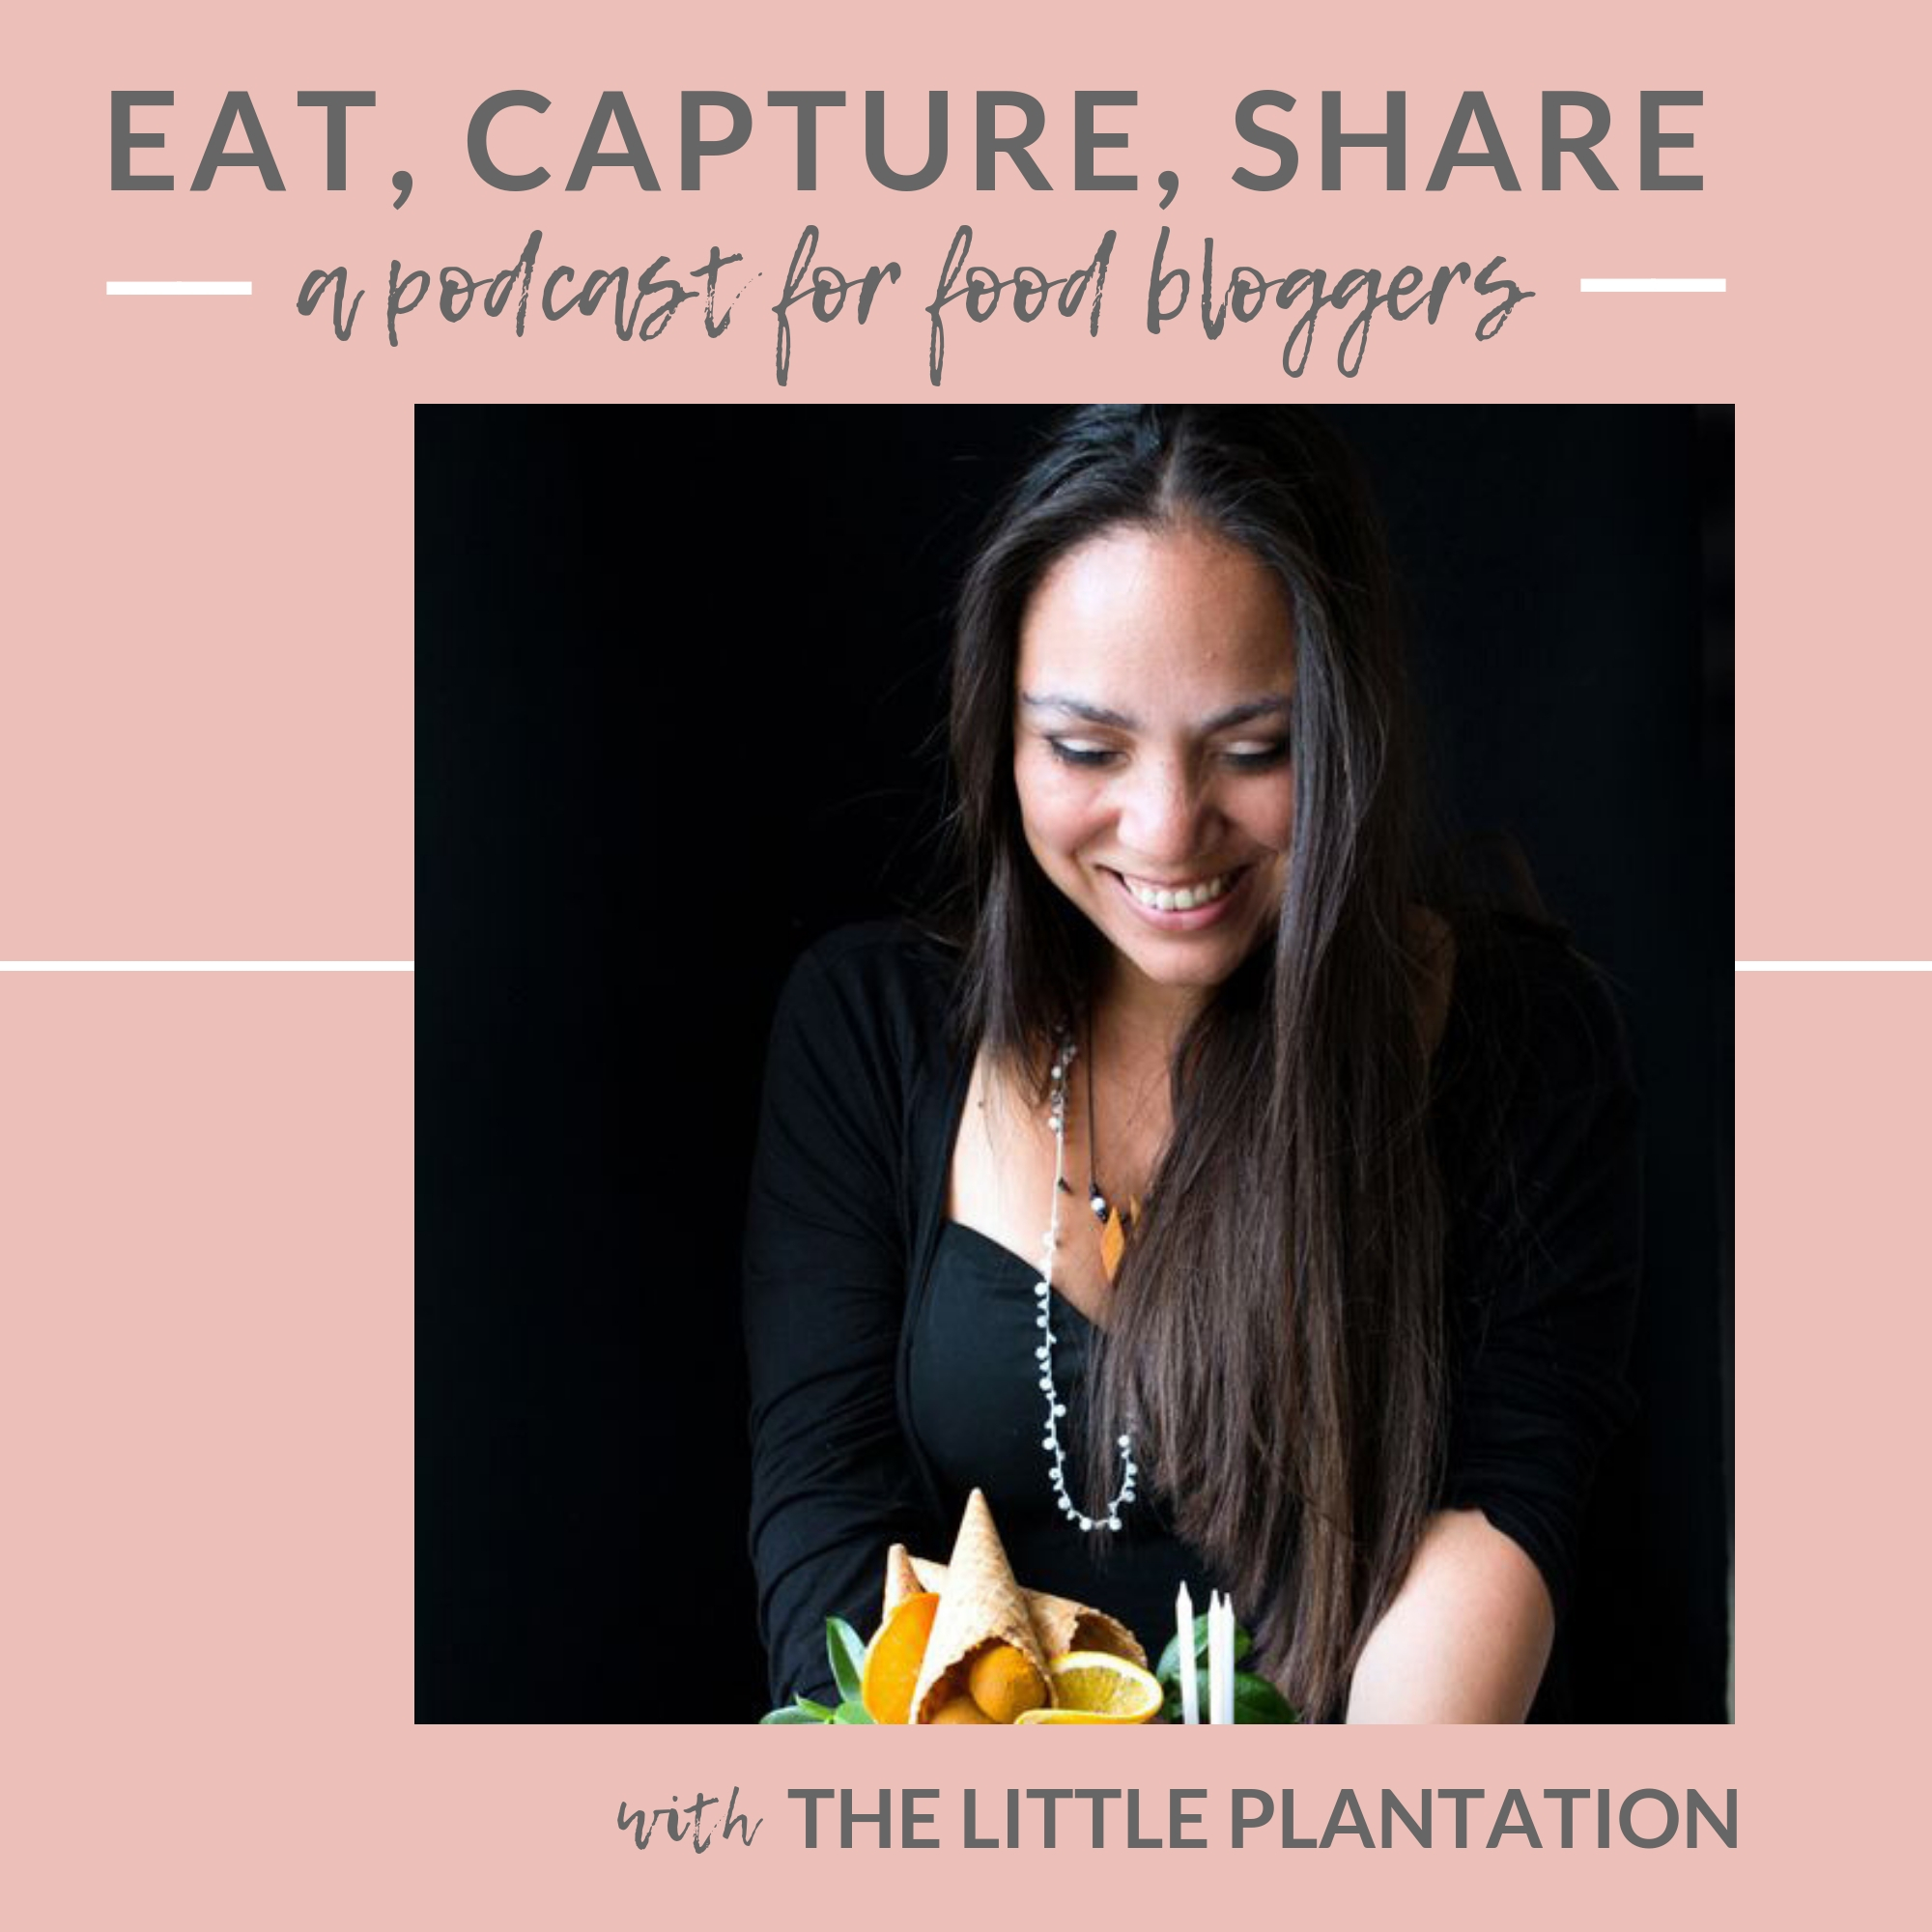 Eat, Capture, Share - A podcast for food bloggers - The Little Plantation